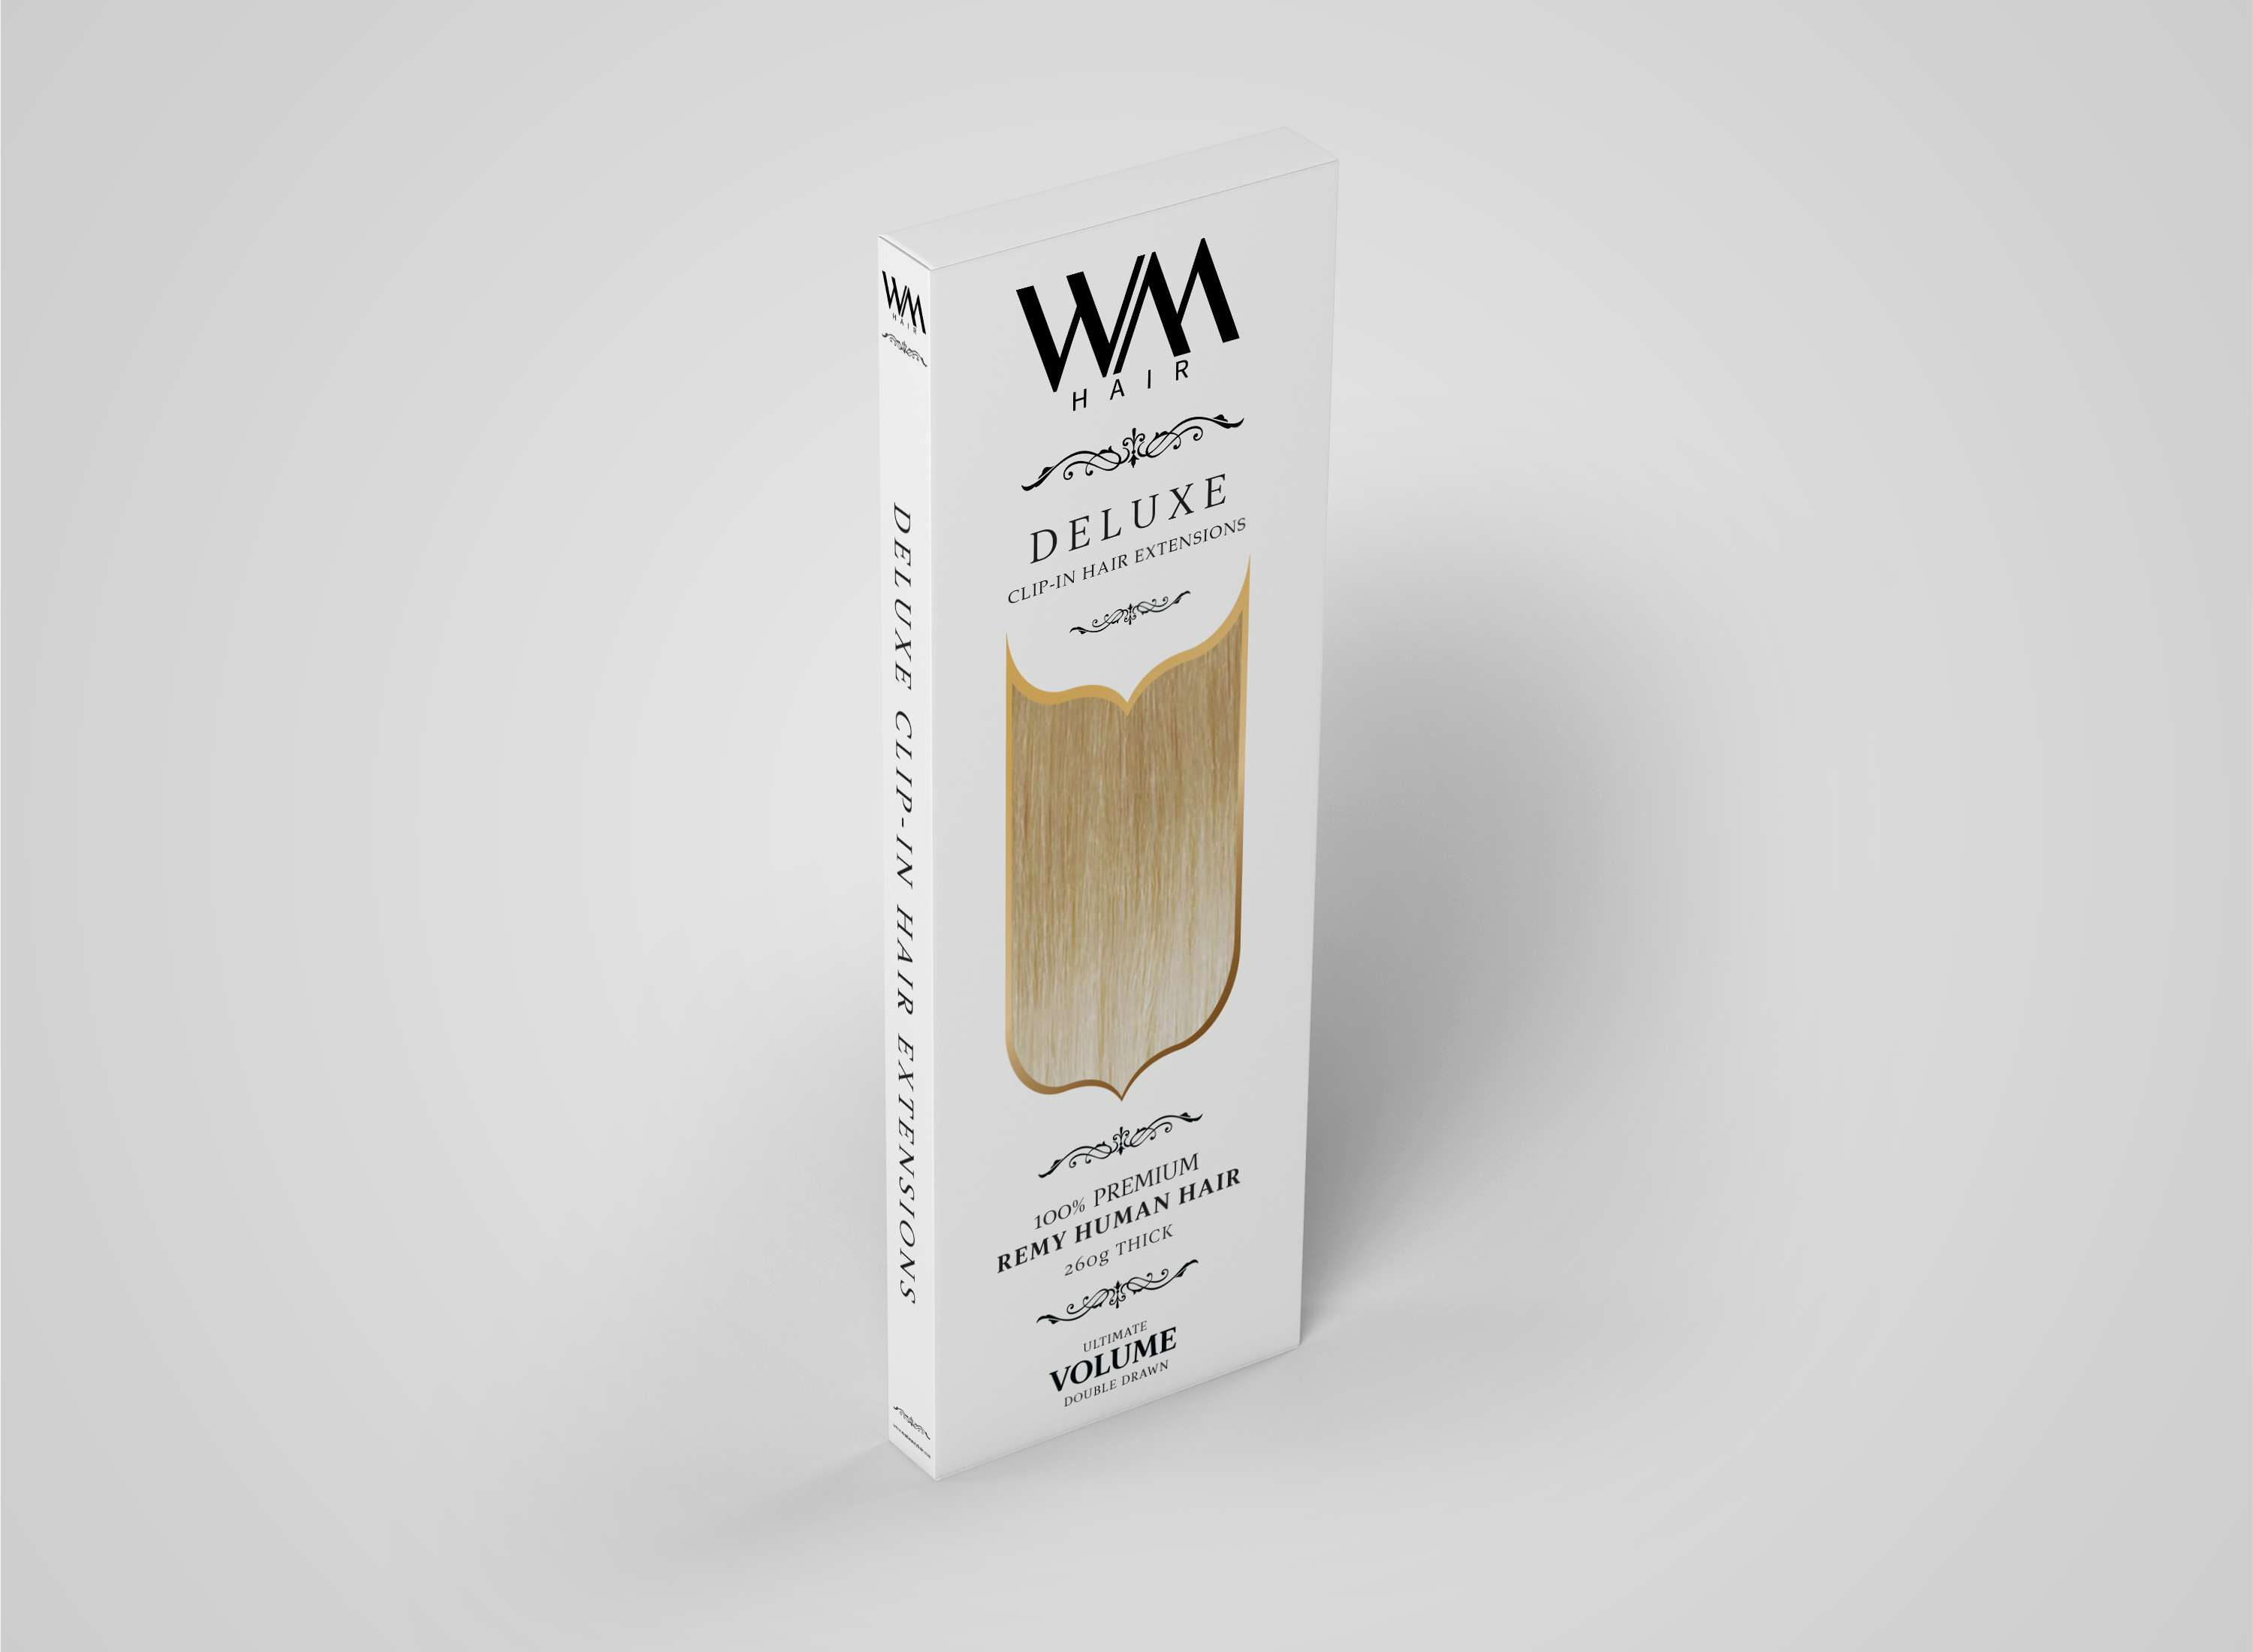 deluxe-clip-in-hair-extensions-packaging-design-remy